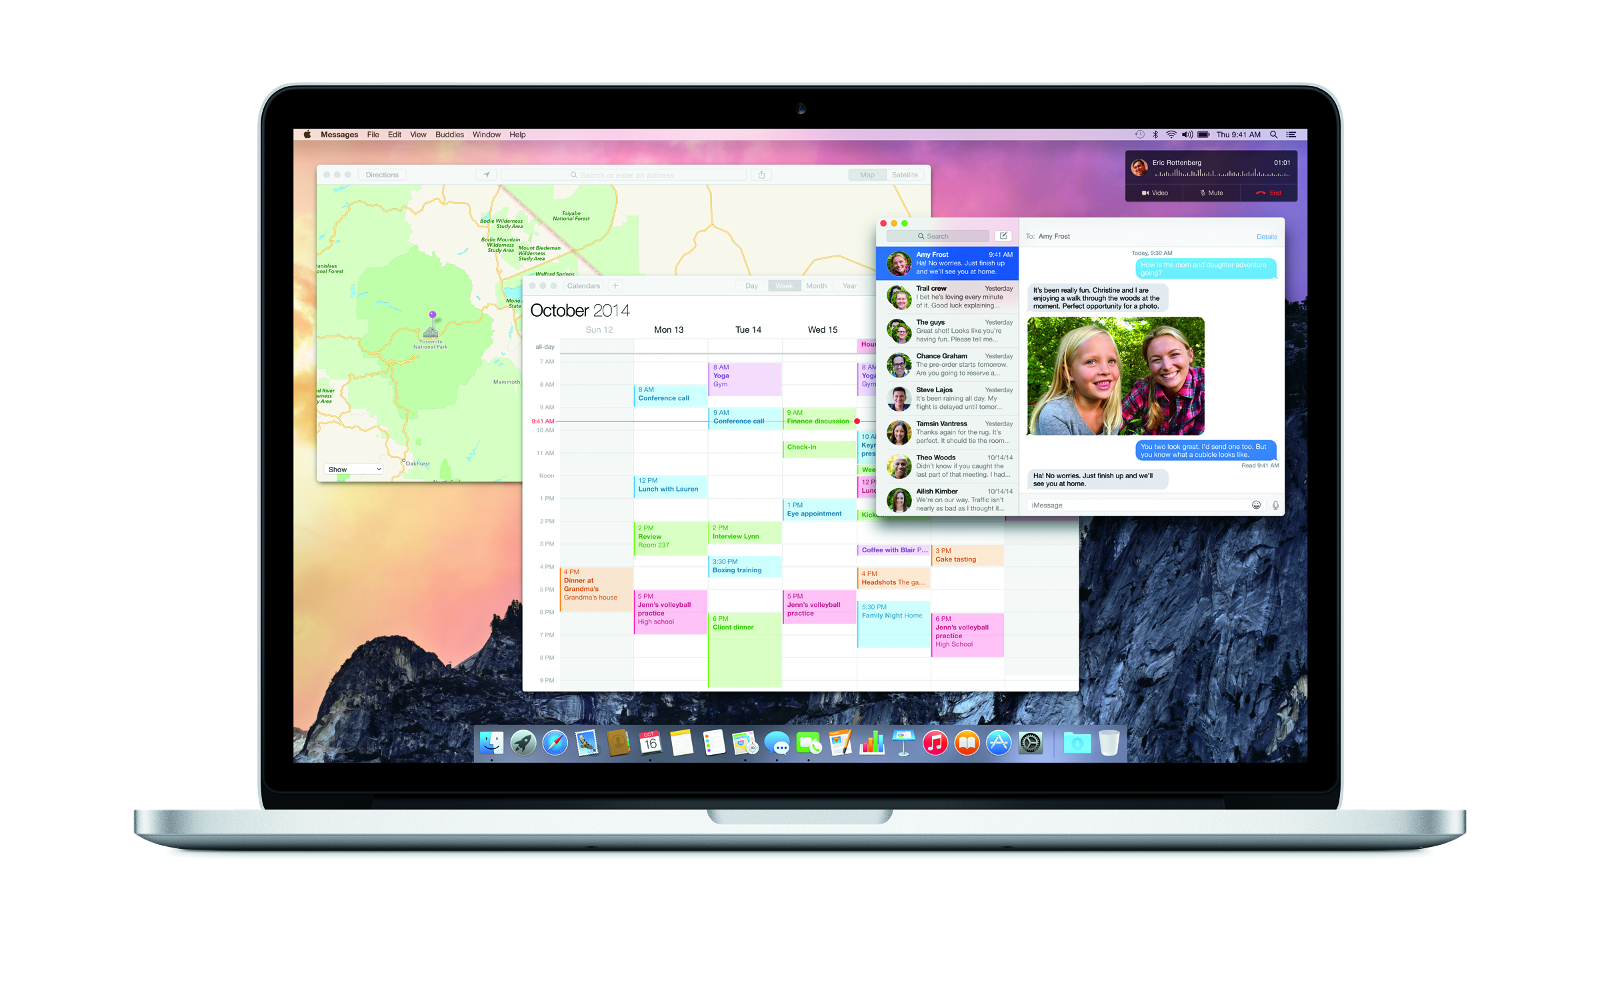 Mac OS X Yosemite MacBook Laptop